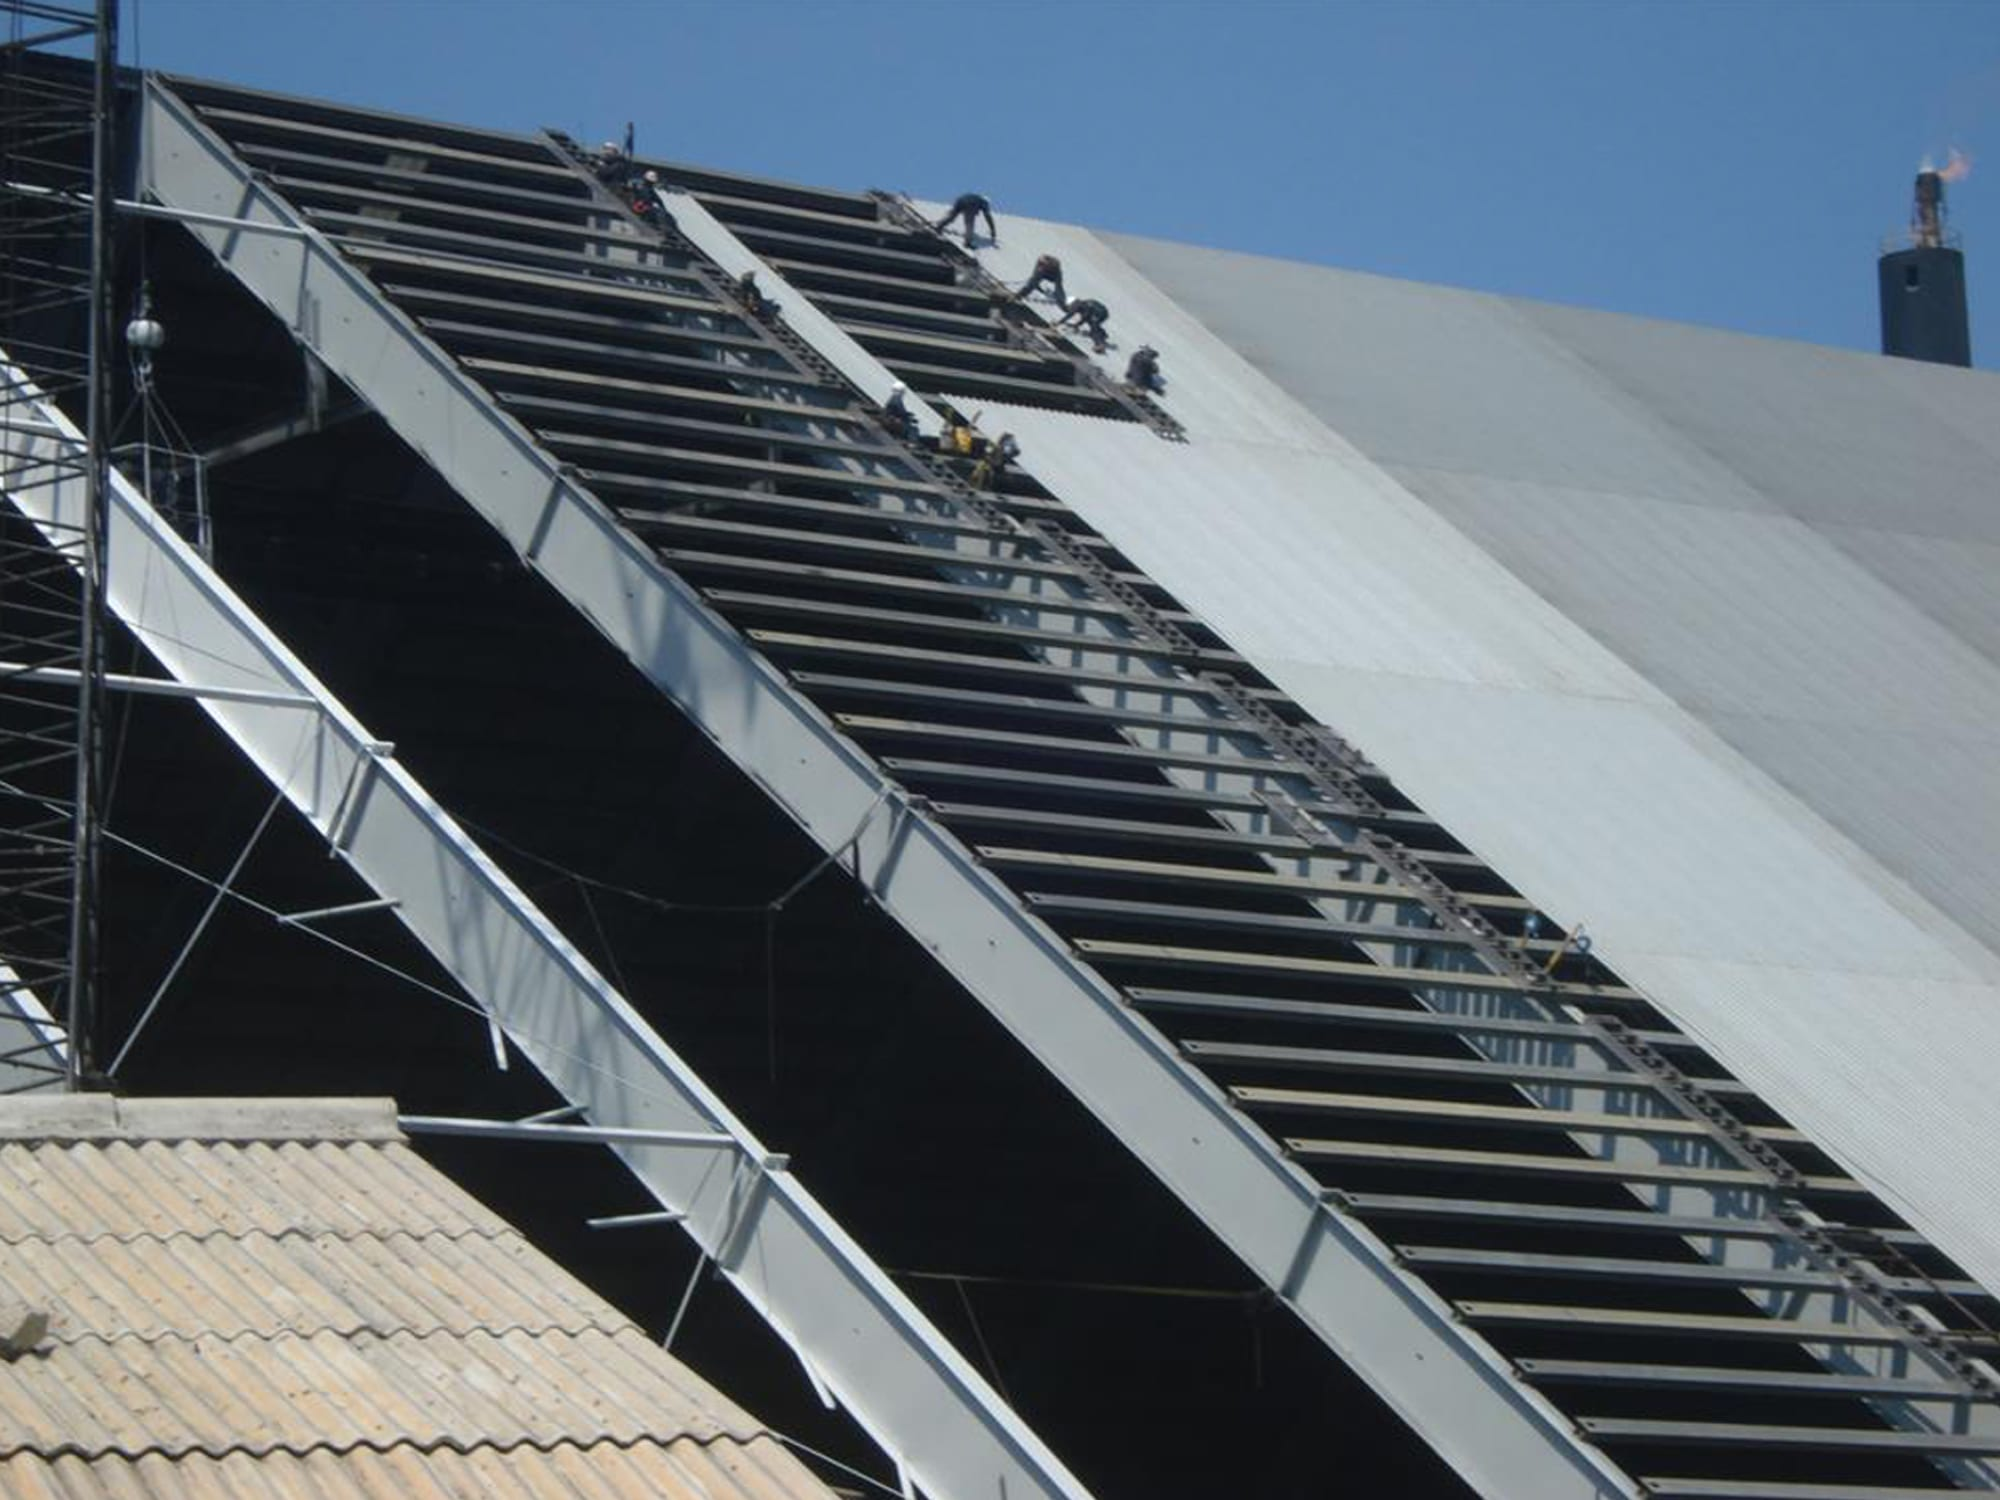 csm industrial steep roof project at valero